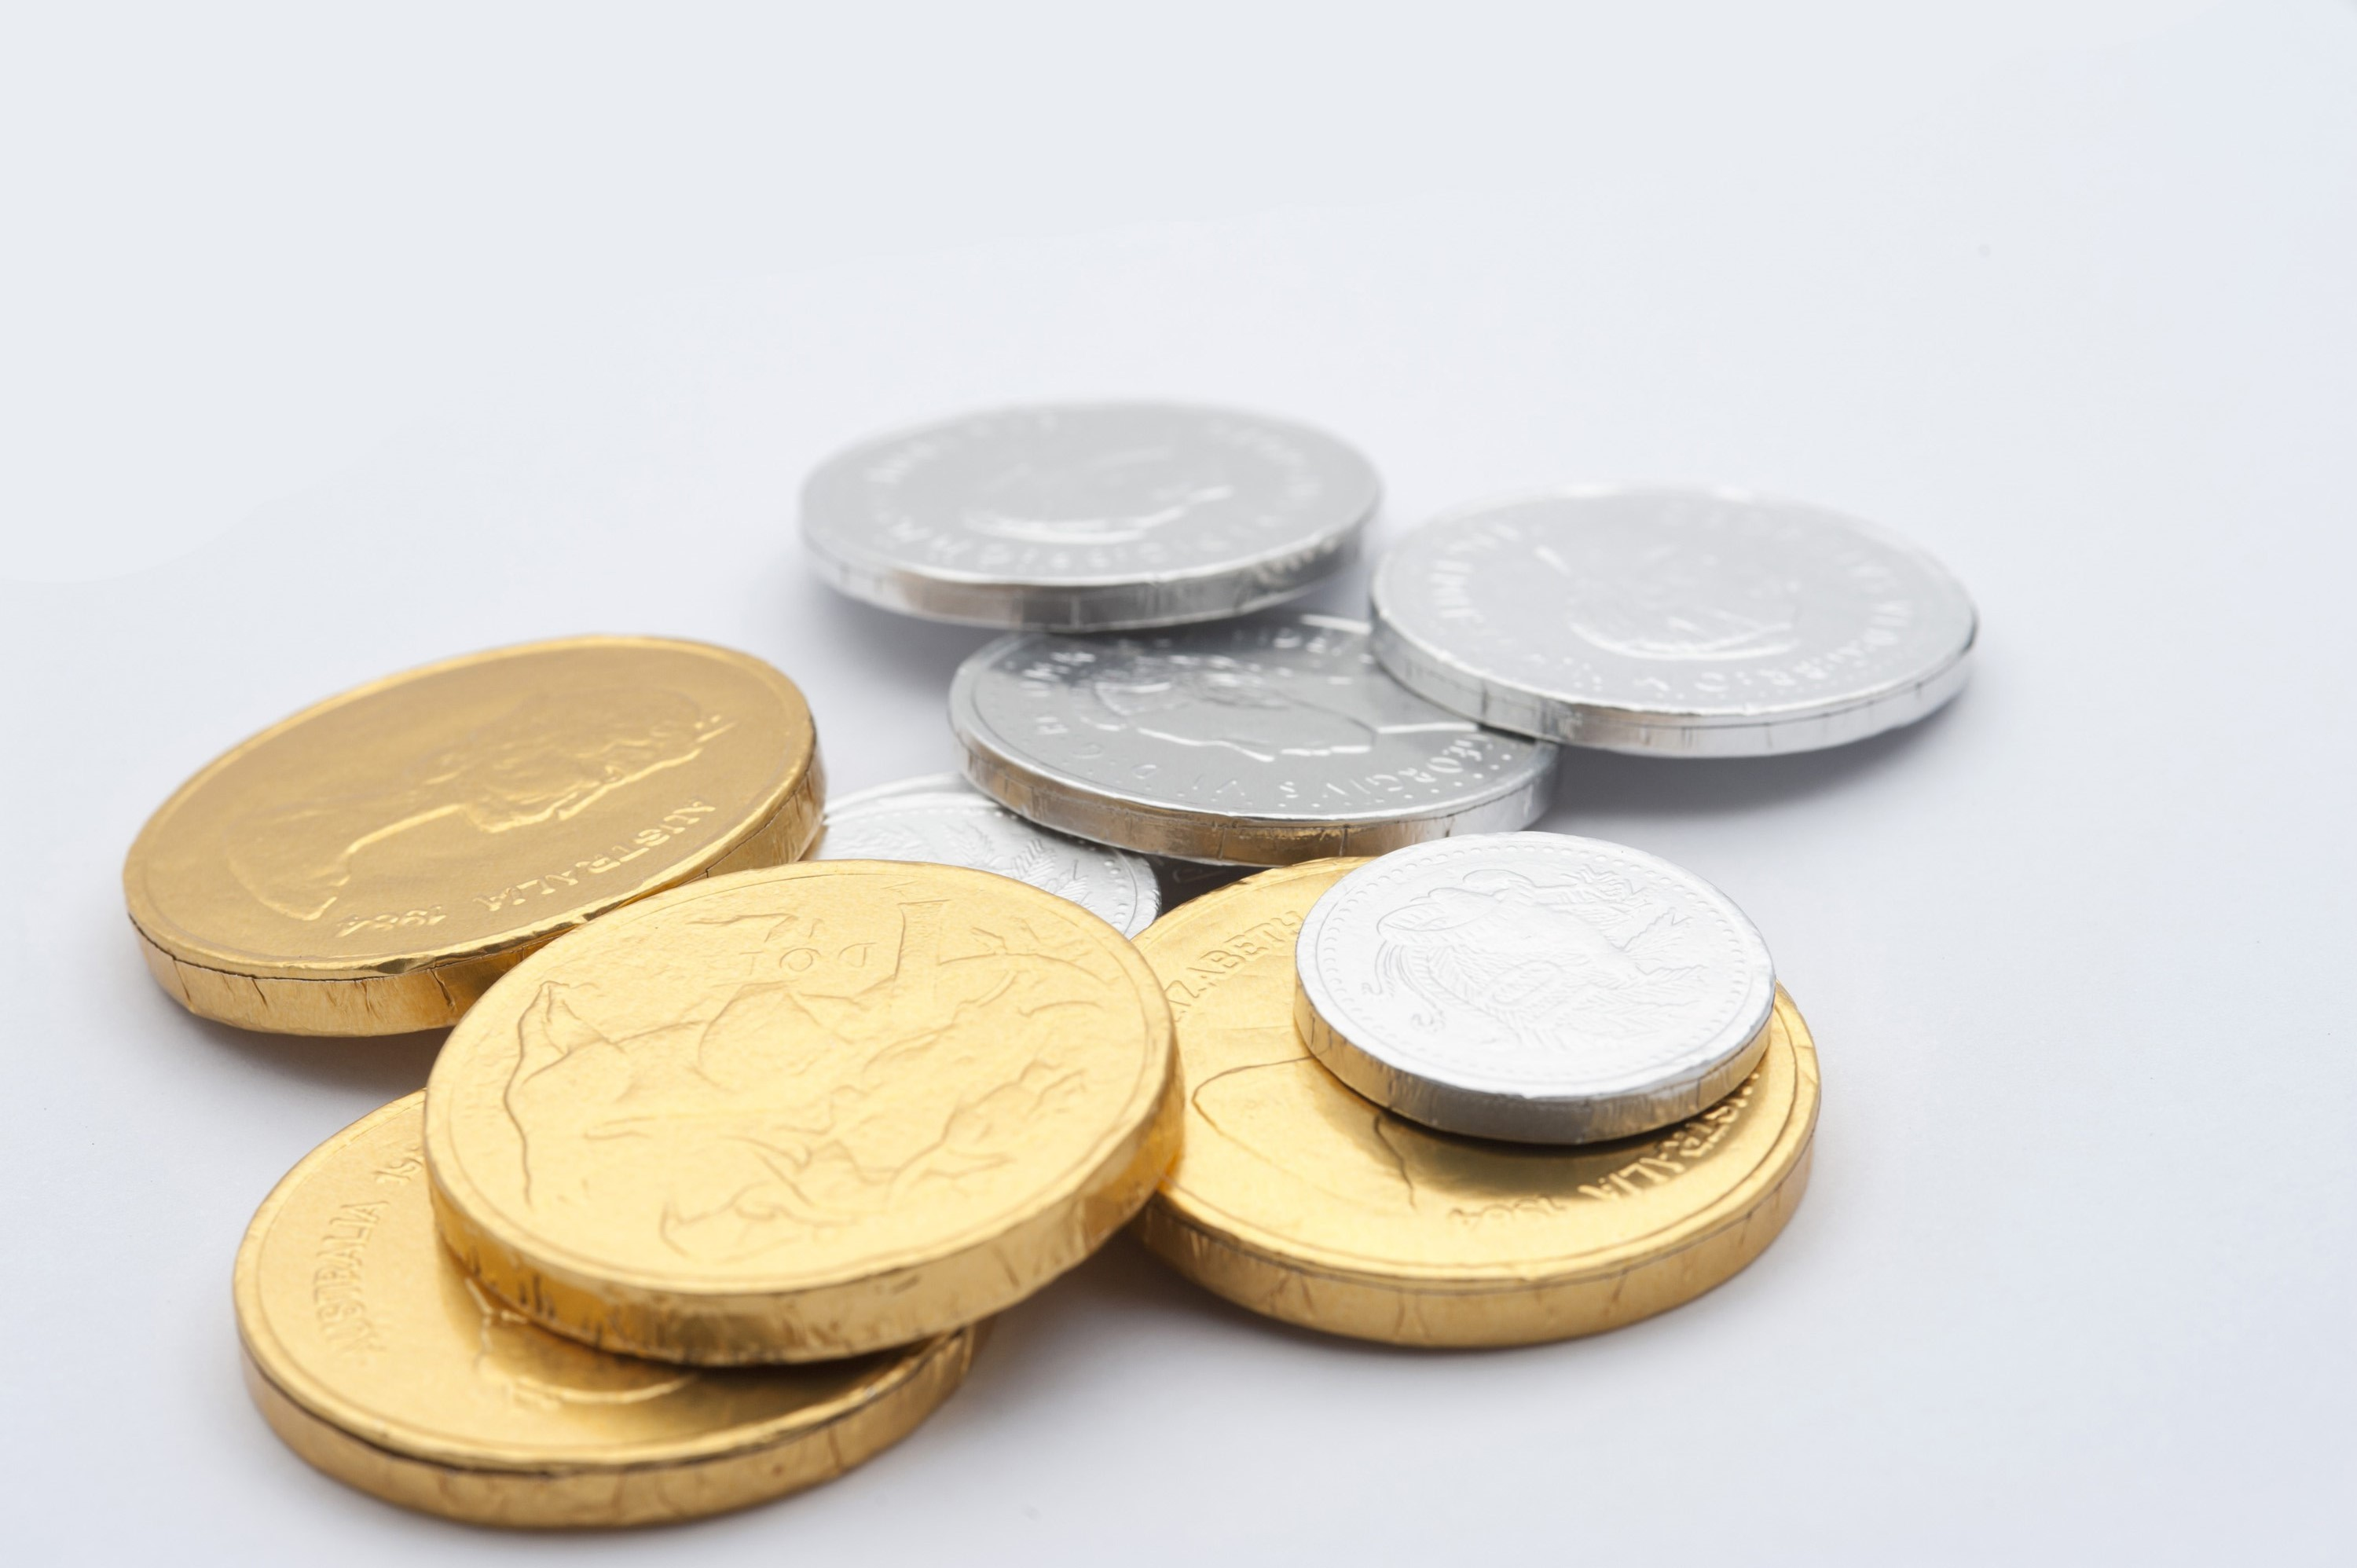 Gold and silver chocolate coins wrapped in metallic foil for a special candy treat on a festive occasion